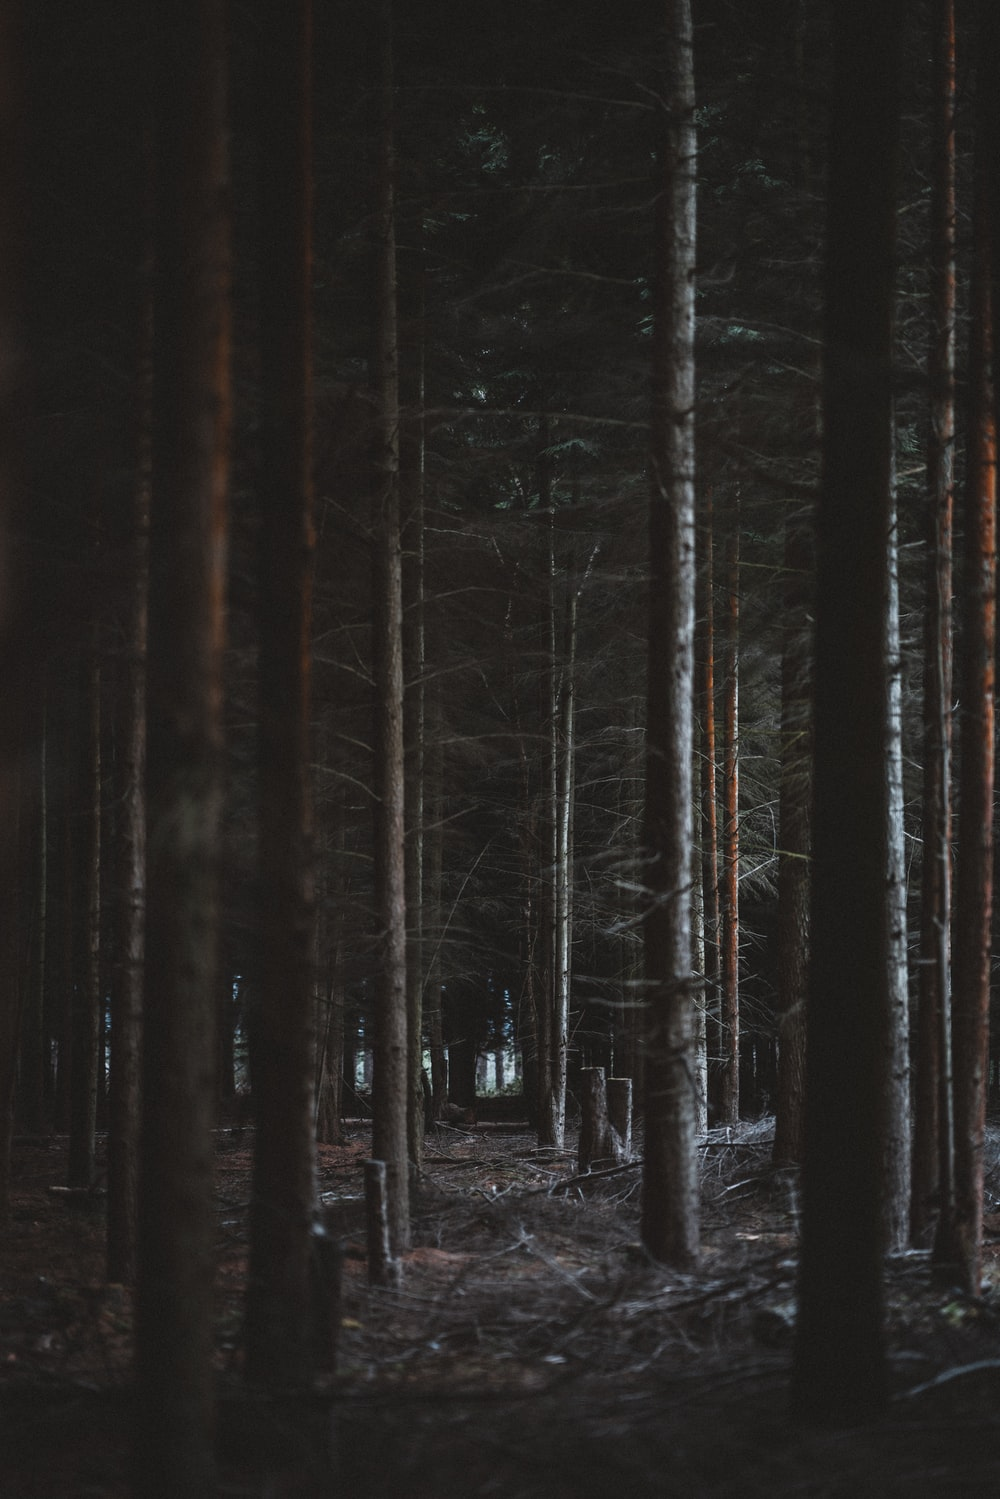 forest during nighttime